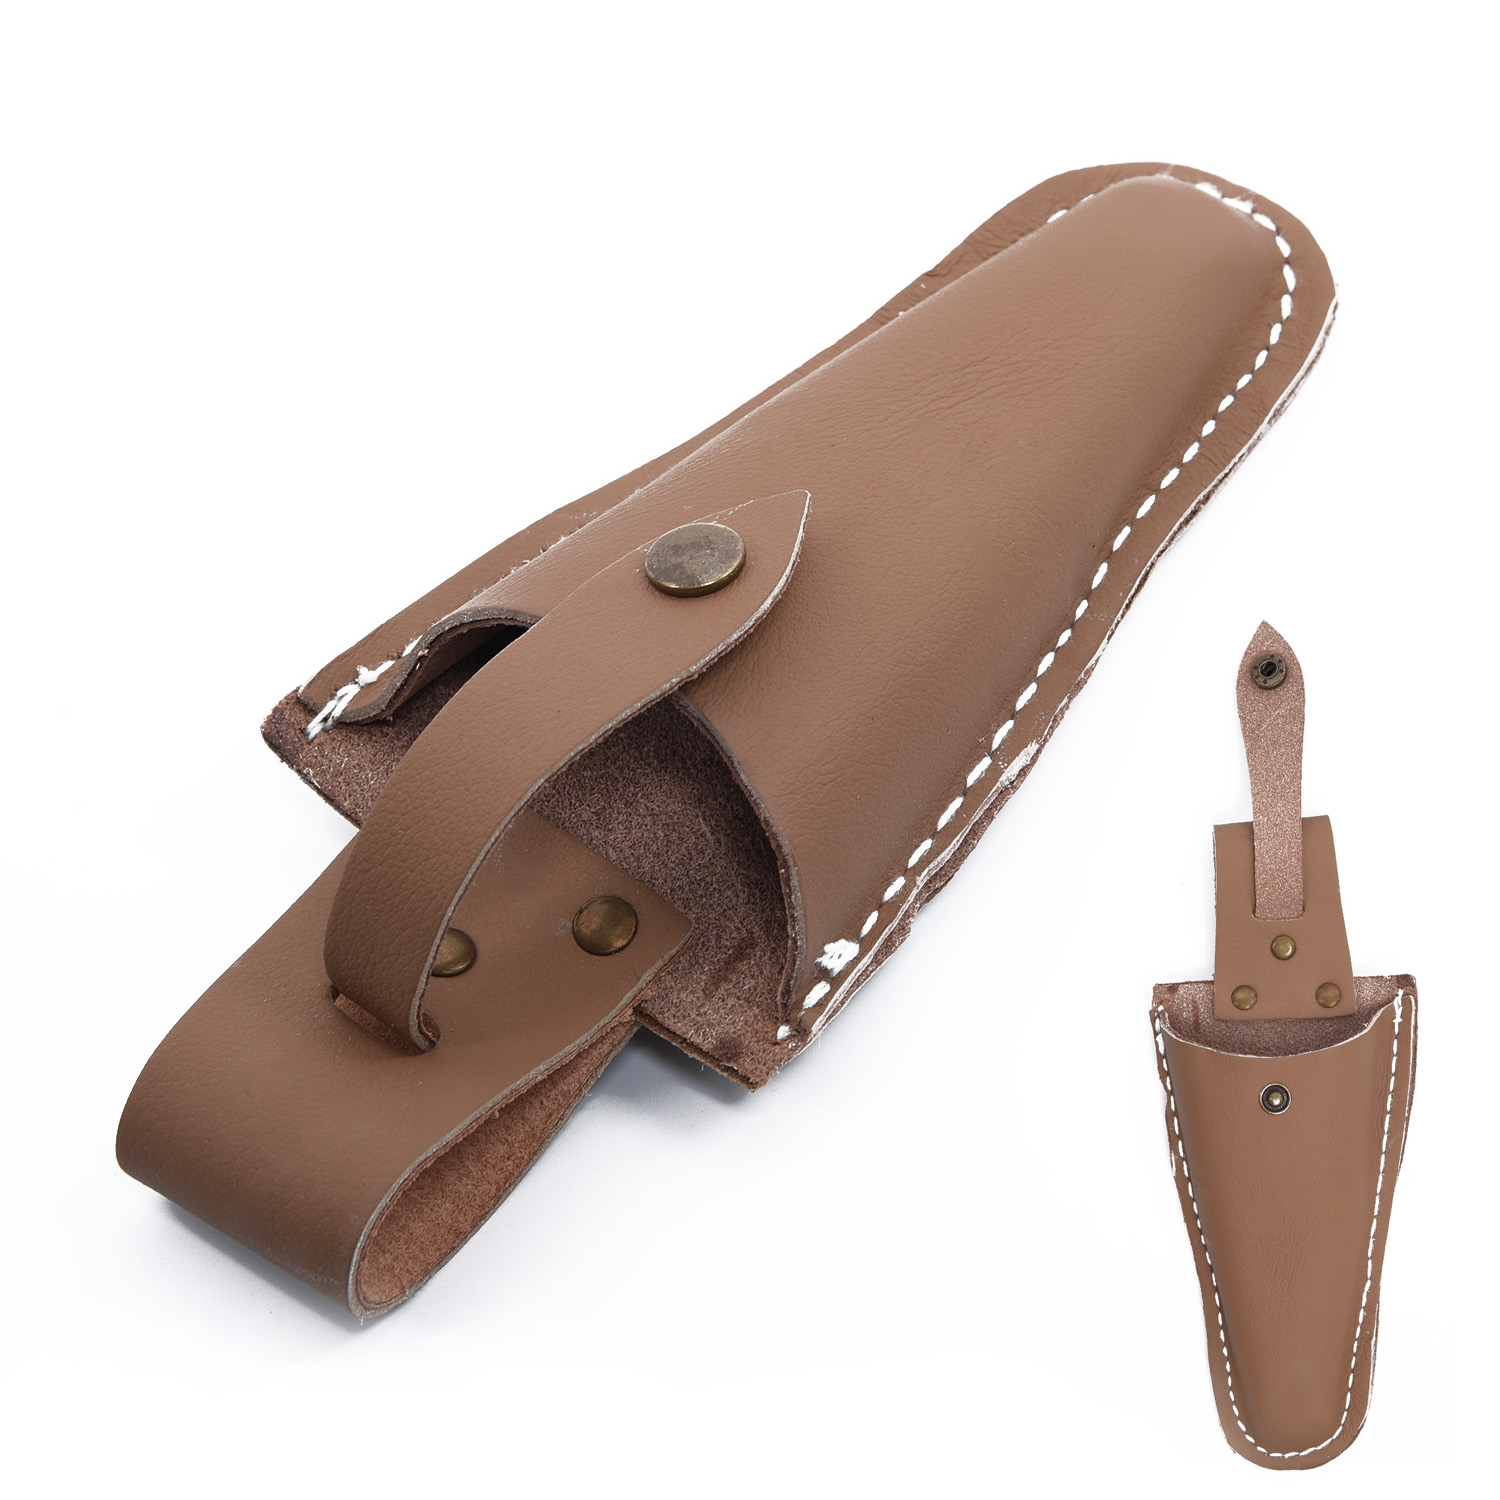 1x Leather Sheath Tool Holsters Belt Holder Pouch Bag For Pliers Pruning Shears~